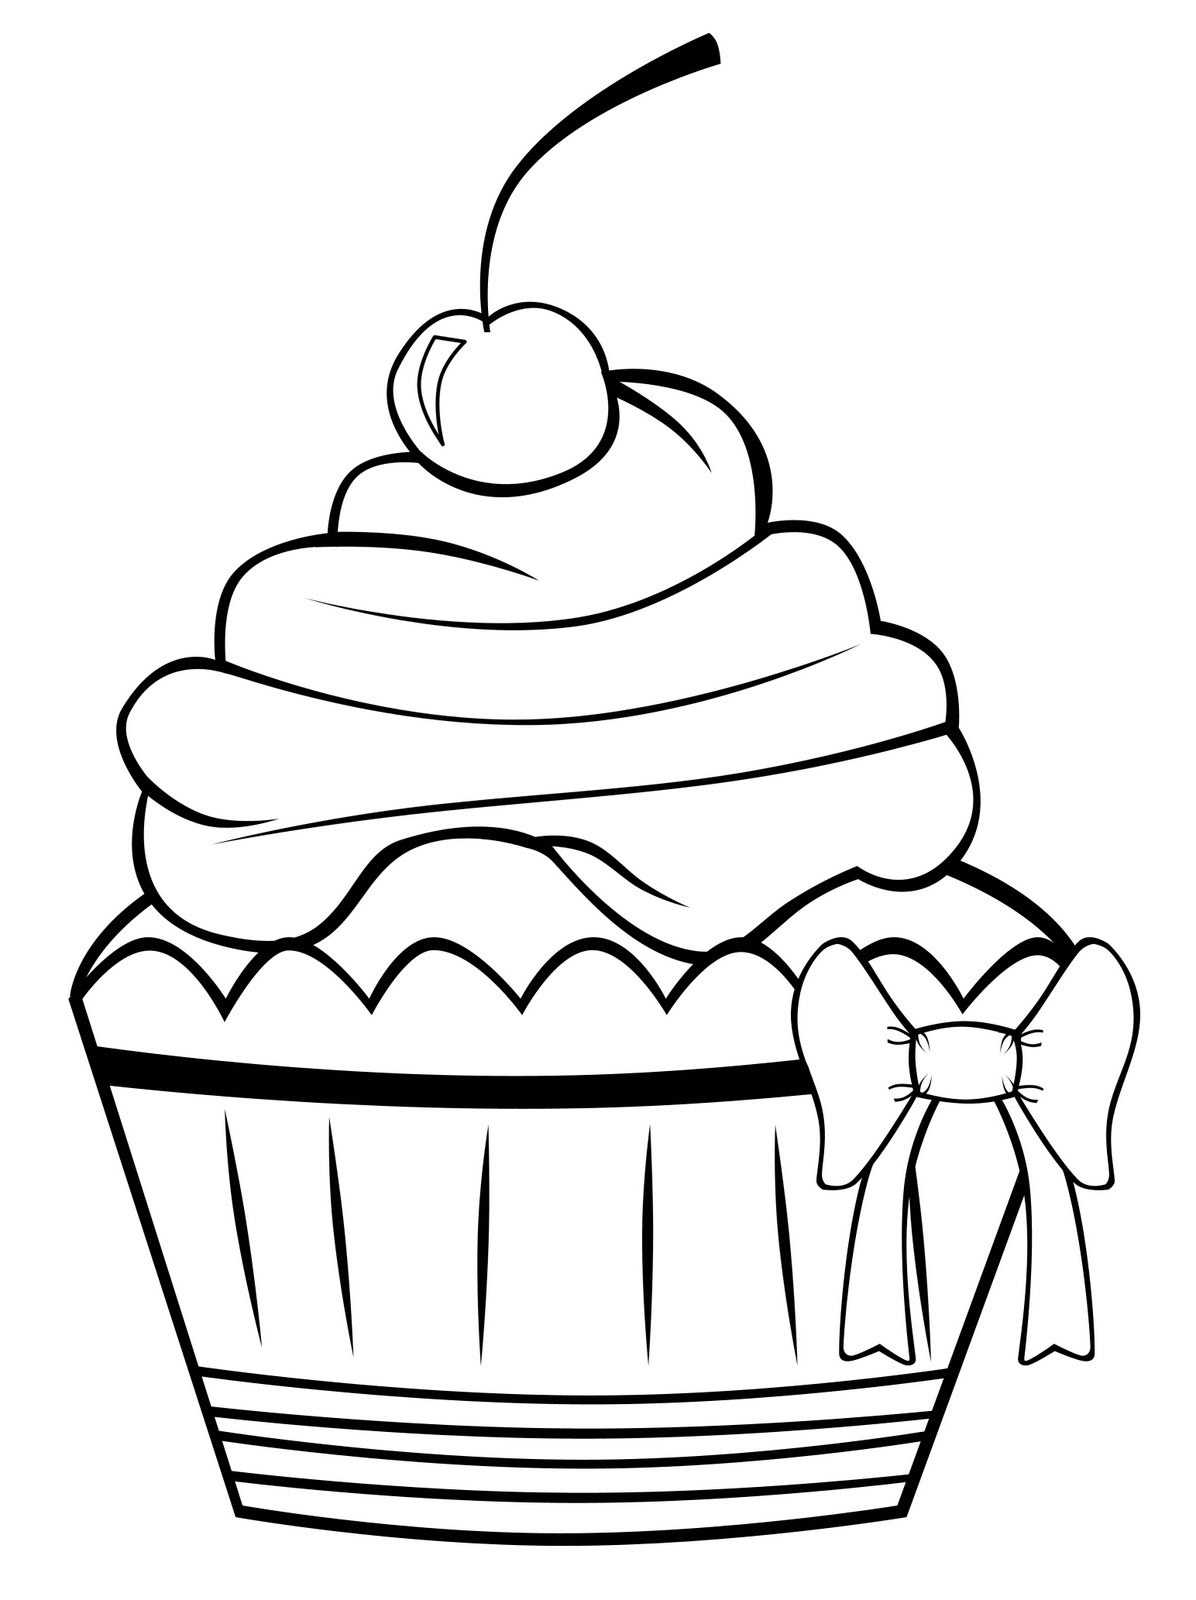 image relating to Printable Cupcake named Cost-free Printable Cupcake Coloring Web pages For Youngsters